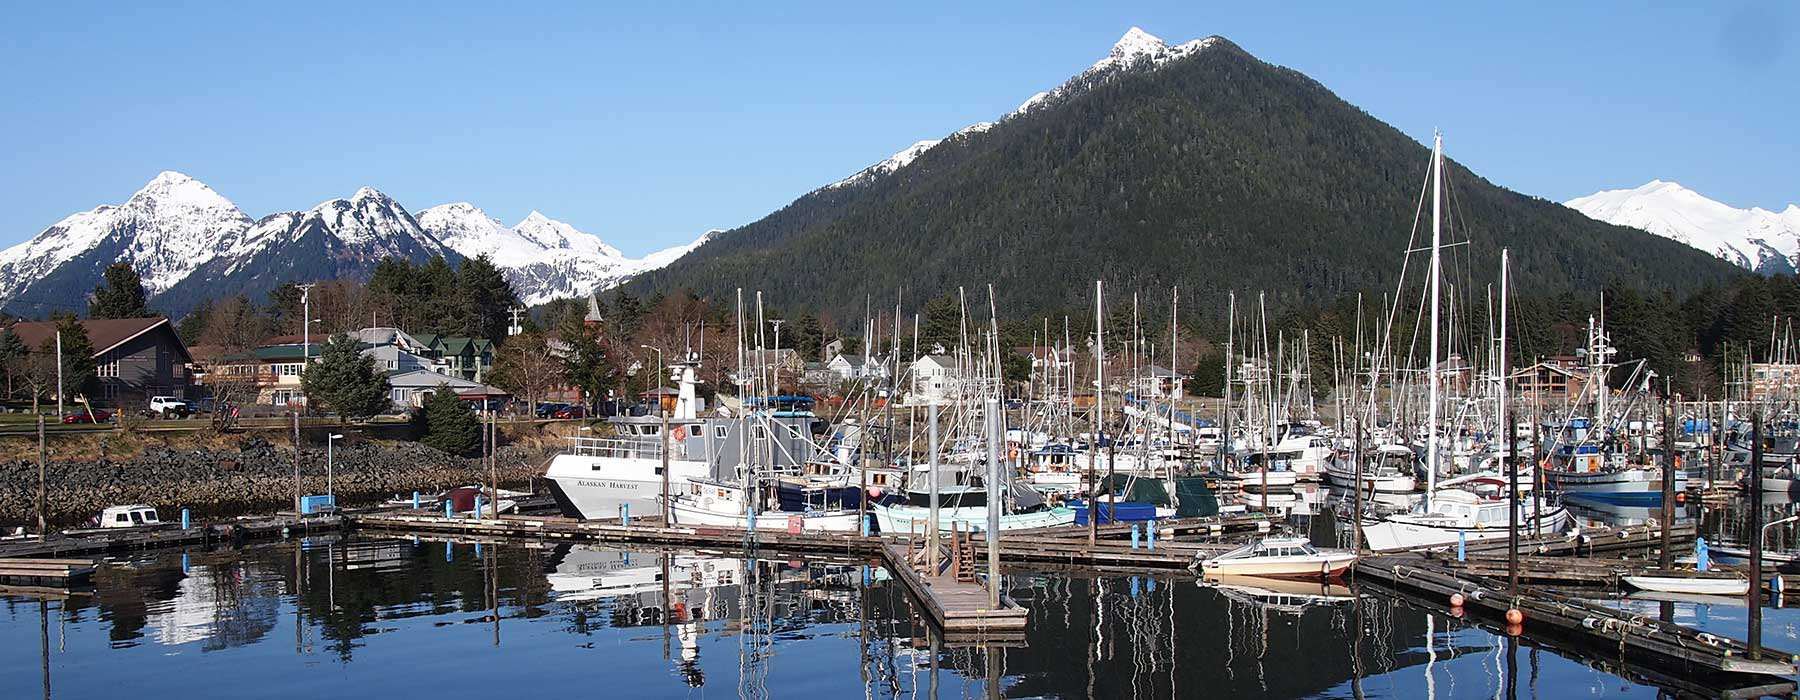 The City of Sitka, Alaska Chooses EvoGov: Ketchikan and Sitka are top cruise destination cities in Alaska and both are customers